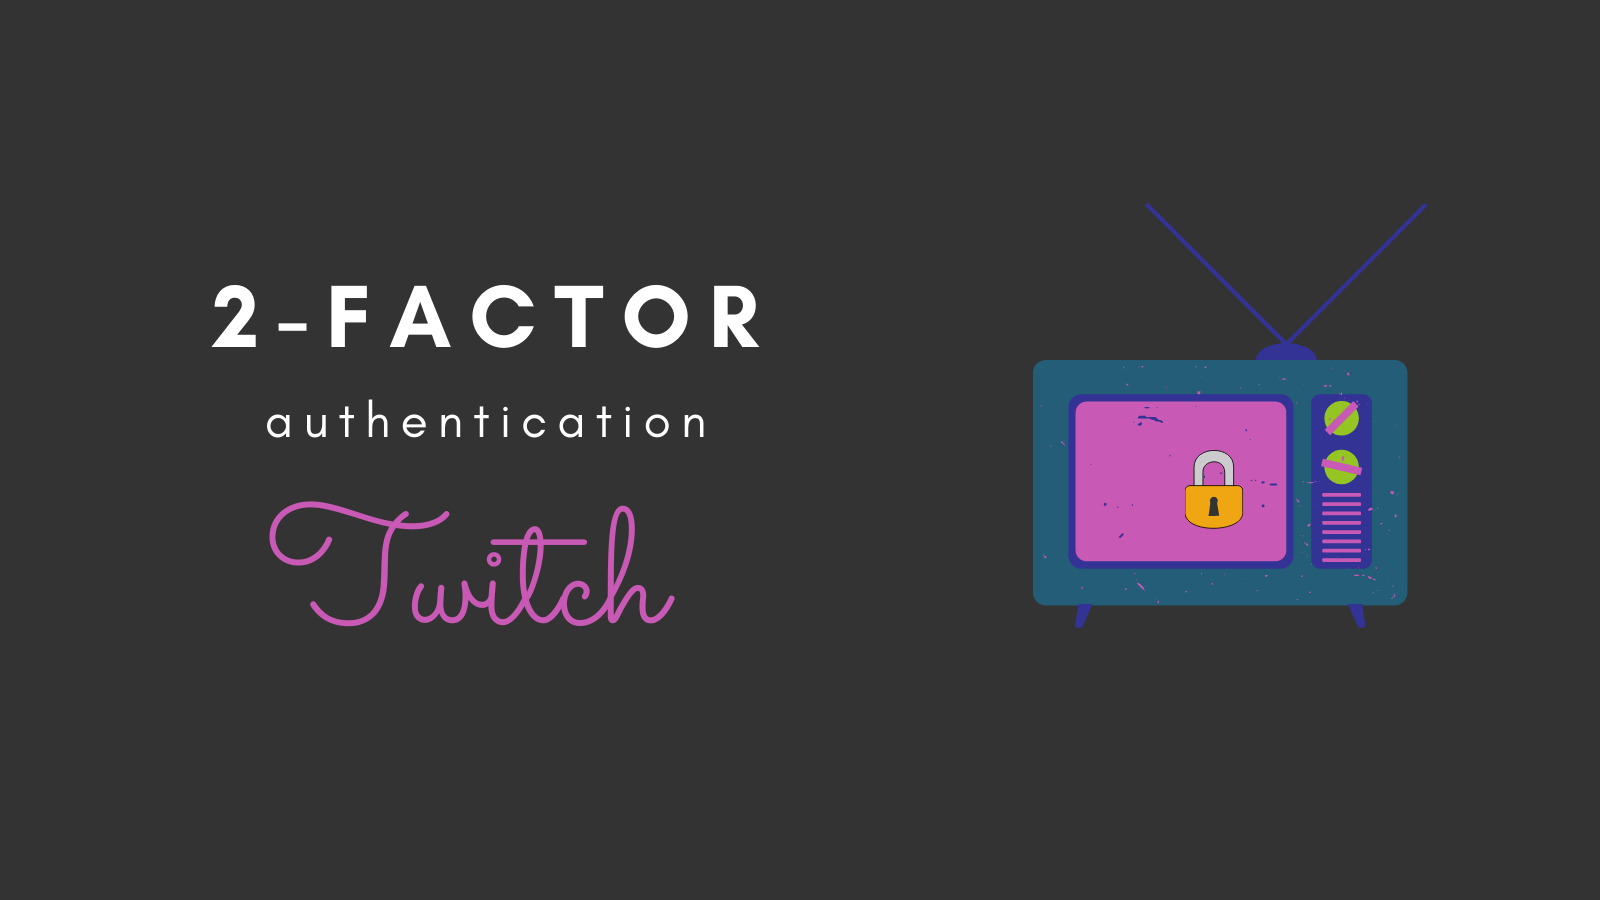 2-Factor authentication on Twitch